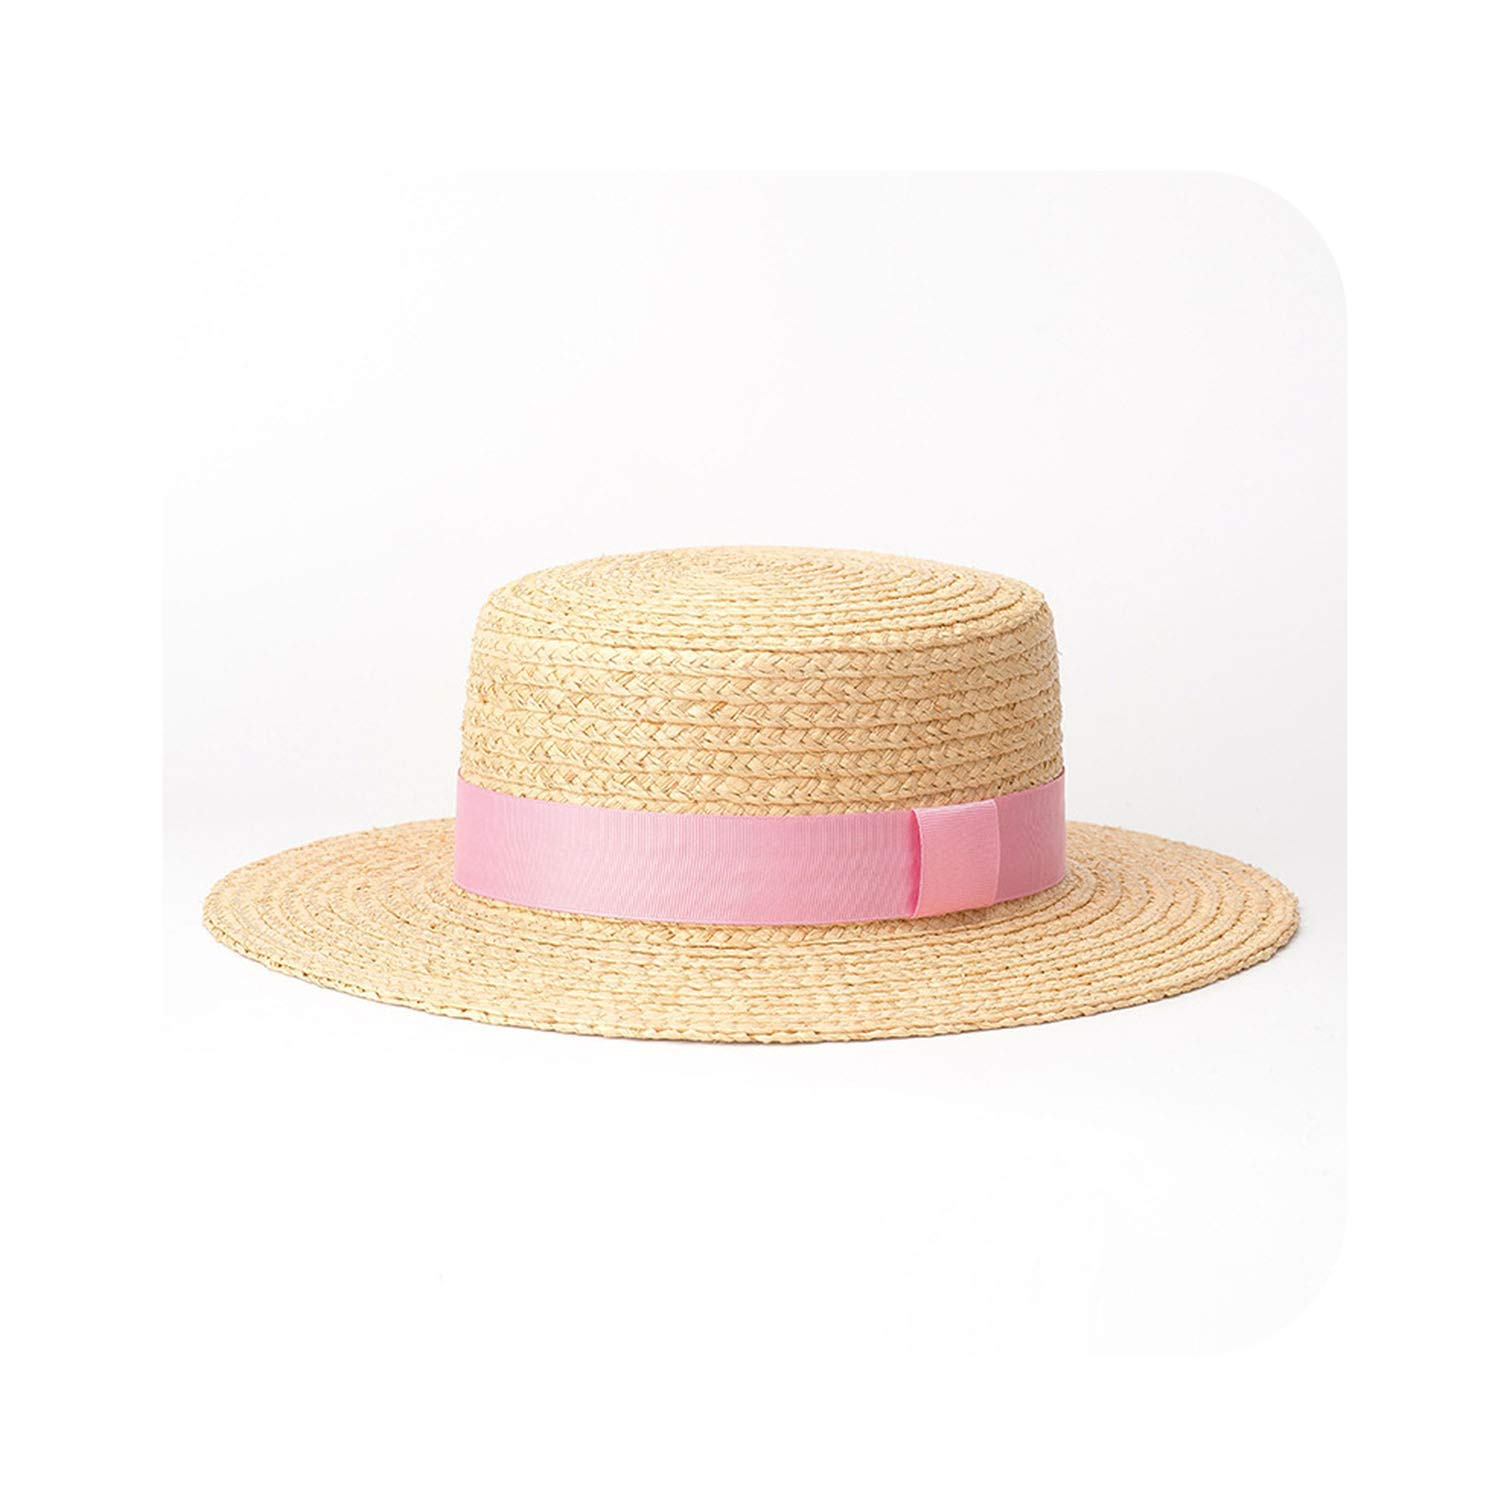 2 Hat Sun Hat Women Fashion Summer Beach Hats for Ladies Quality Hats,